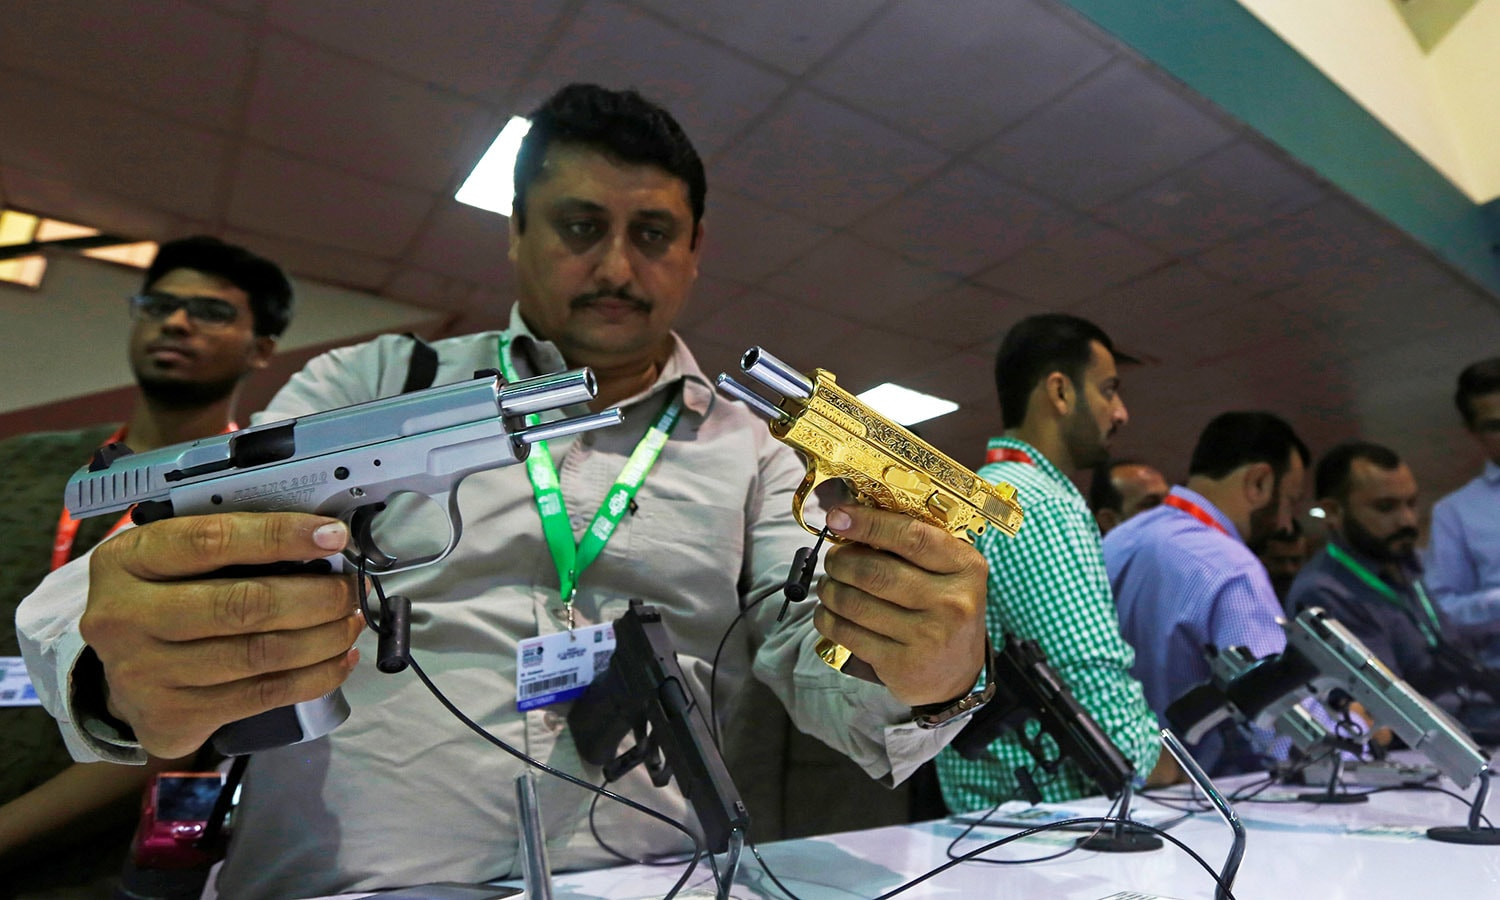 A visitor compares pistols during IDEAS-2016. ─Reuters